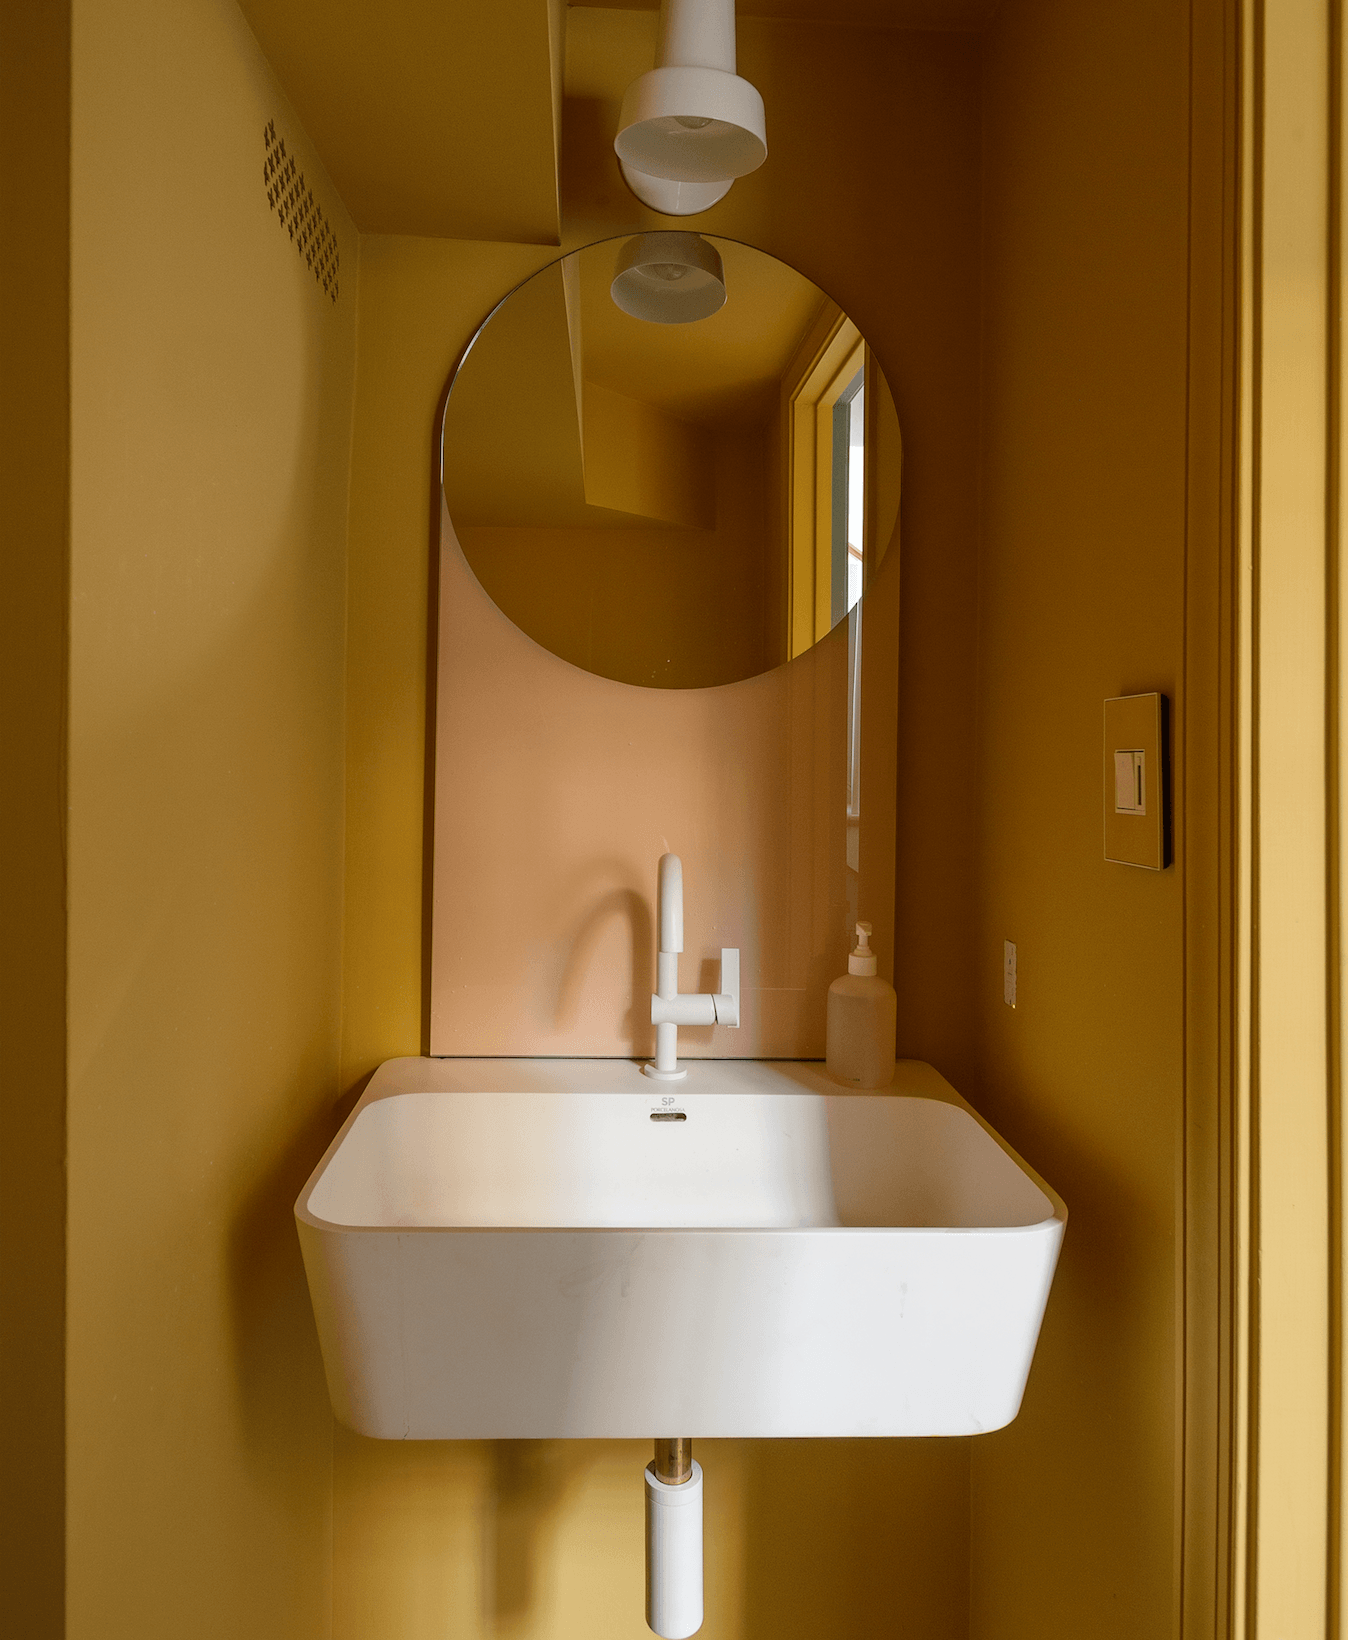 The bath has aHay Shapes Mirror, Porcelanosa Krion Sink (discontinued), matte white Newport Brass Priya Faucet, and Allied Maker Composers Sconce. The flush grille is the Caspian pattern from Majestic Vent Covers.